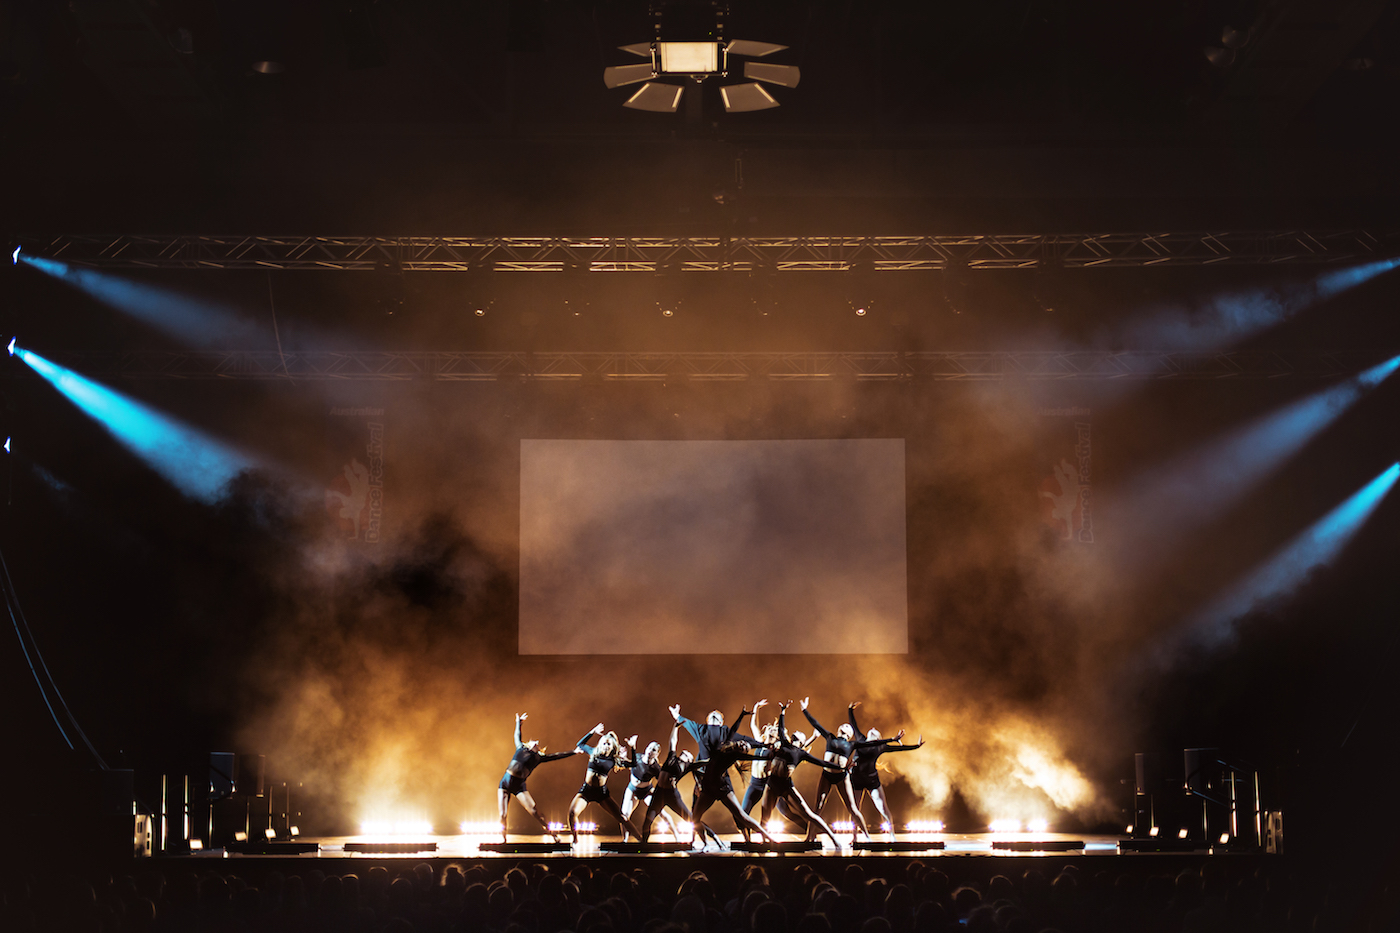 The Dream Dance Company performing 'Prodigy' at the 2018 Australian Dance Festival